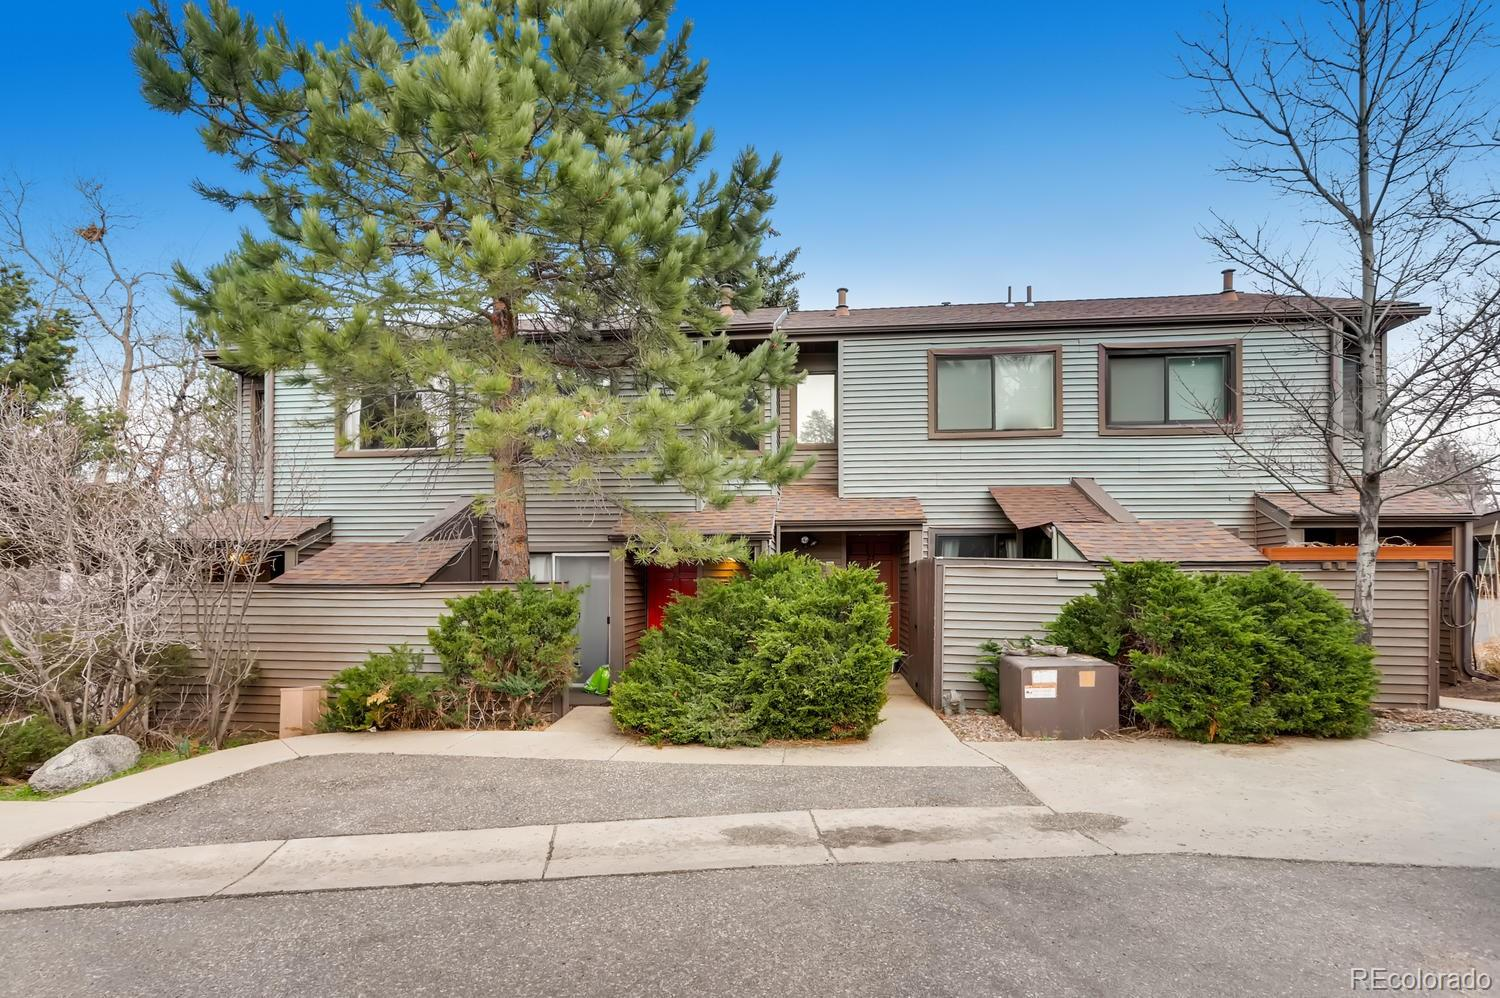 MLS# 4298987 - 1 - 350 Arapahoe Avenue #21, Boulder, CO 80302